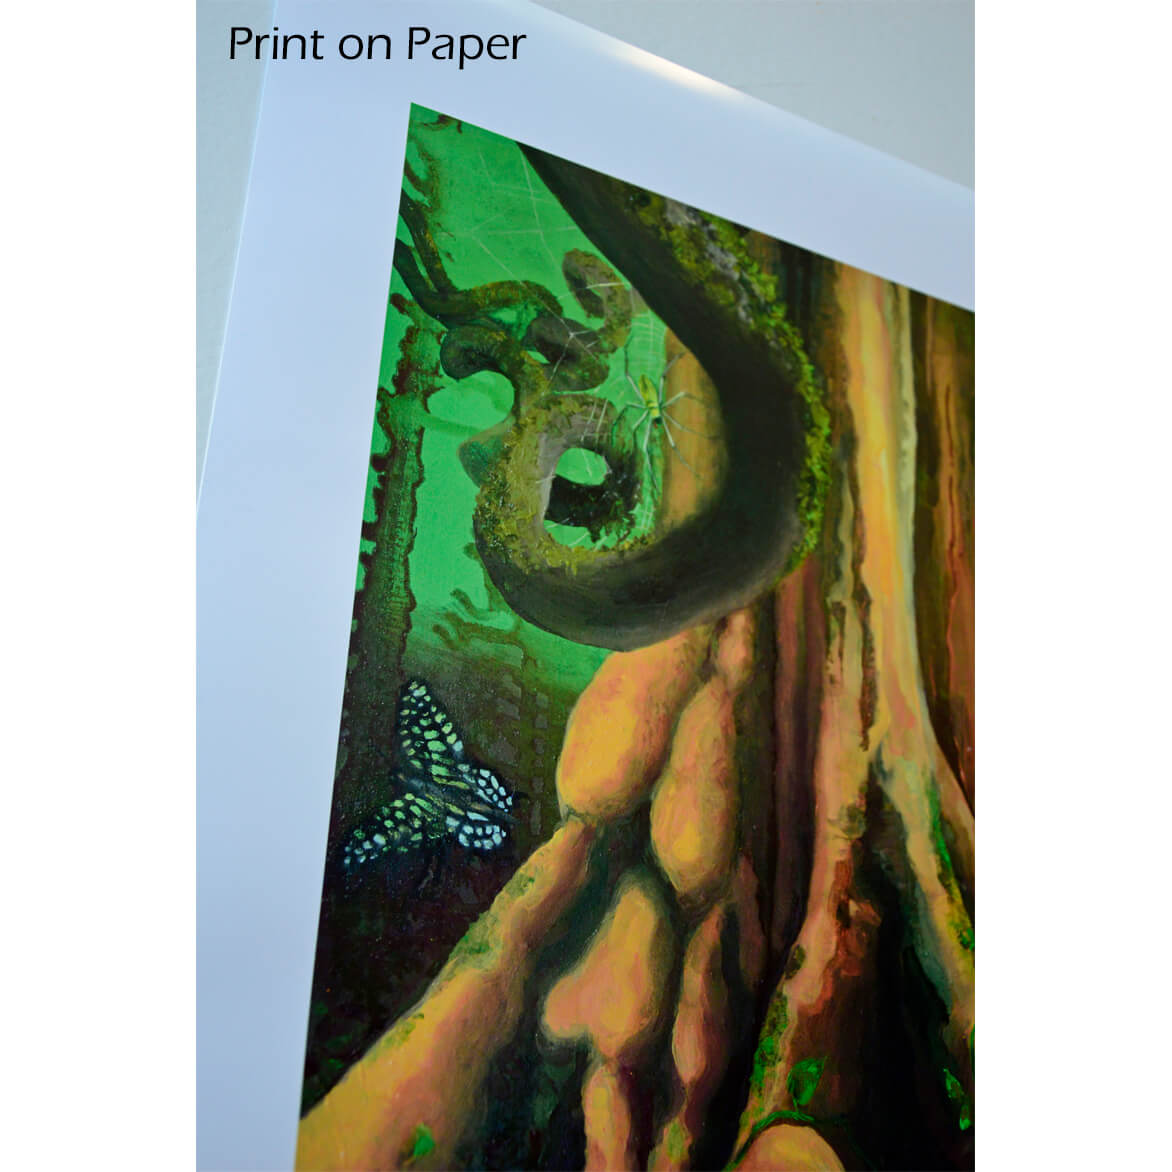 Nature in painting, print on paper